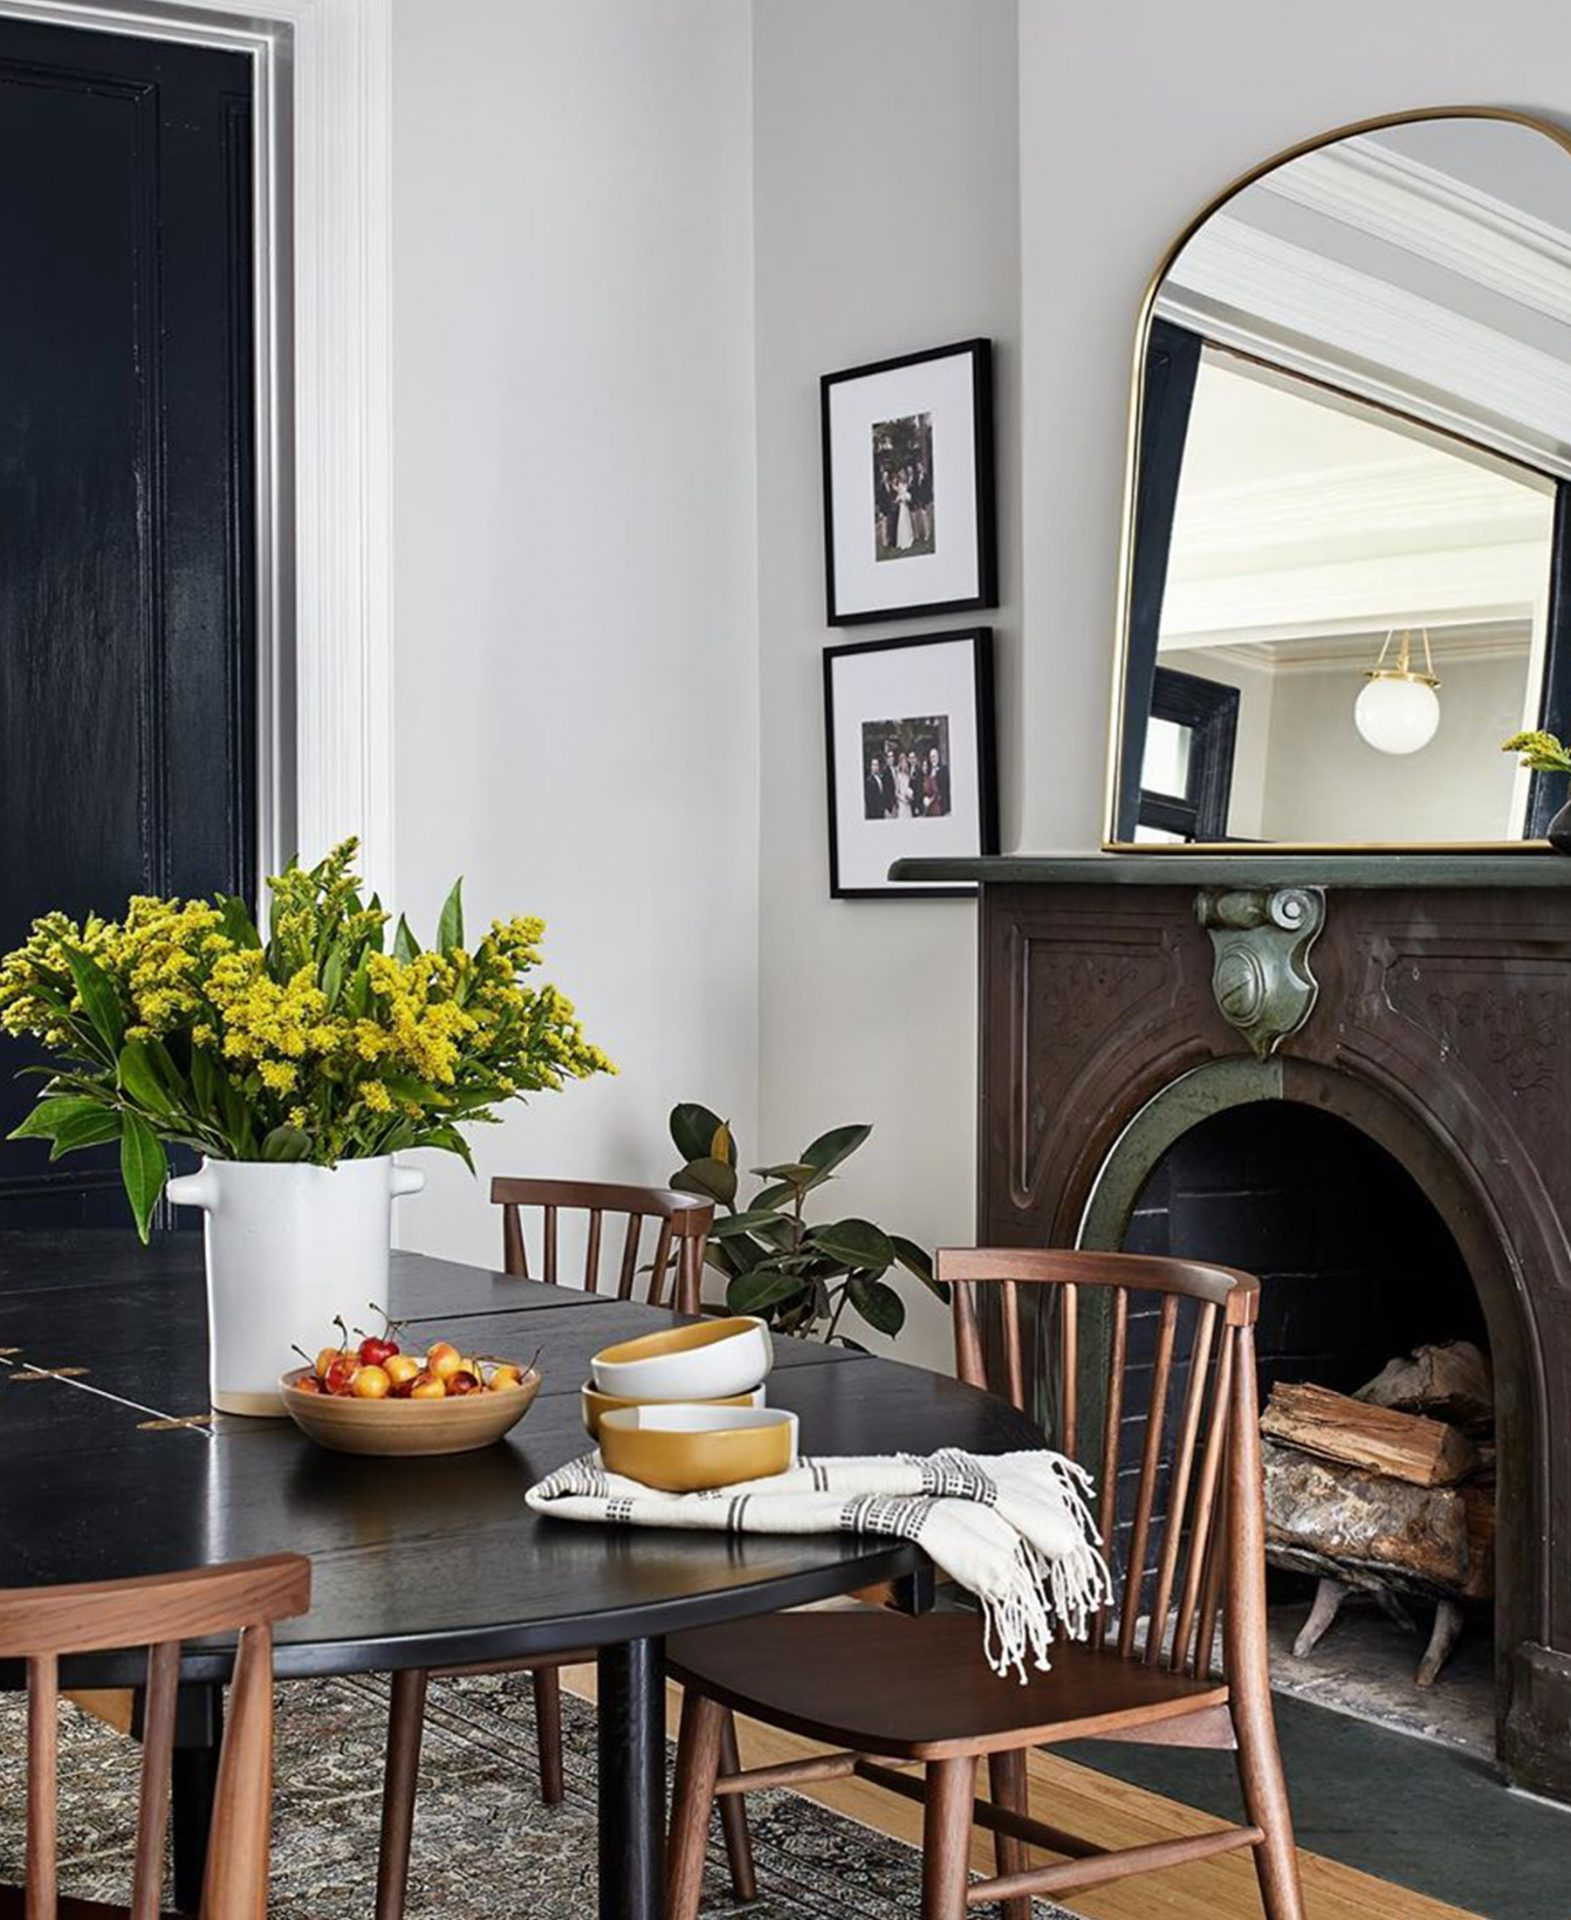 Interior designers from Sanabria and Co show a dining room with Article dining chairs and a rustic fireplace.